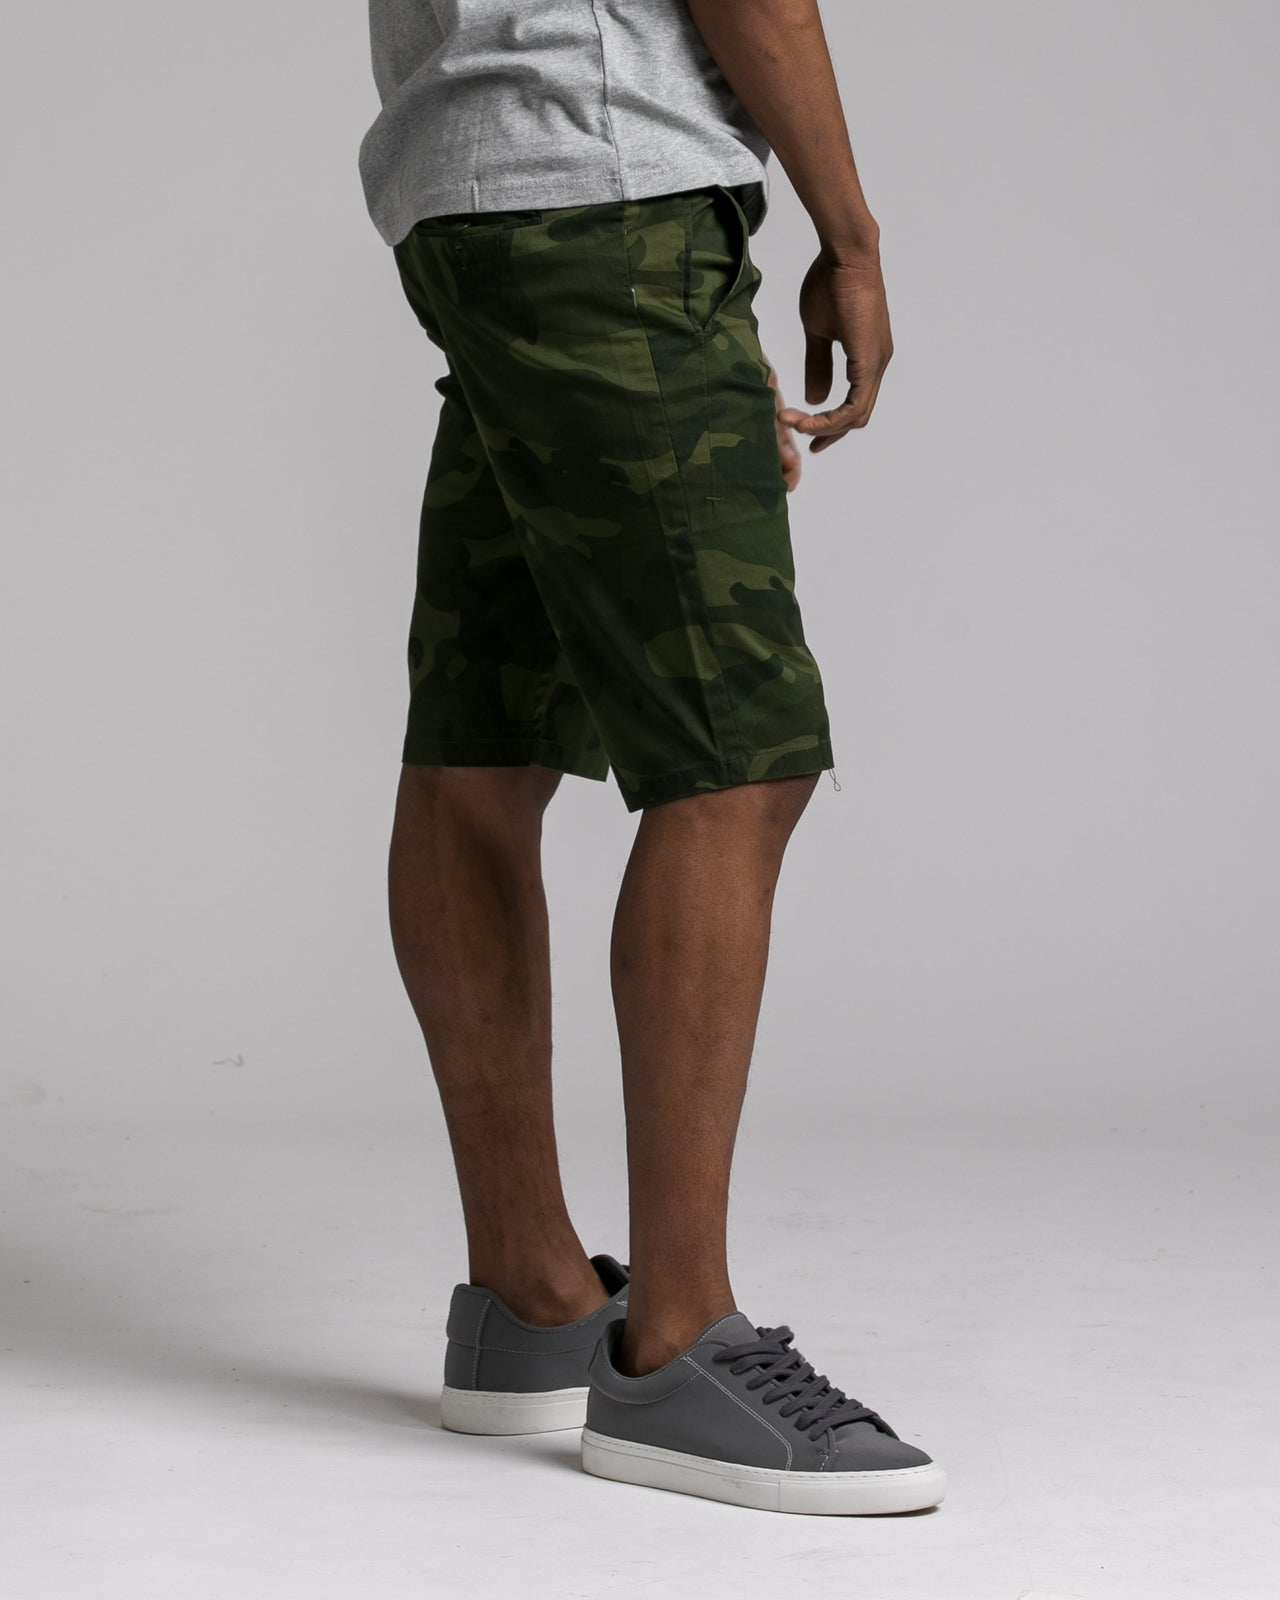 Camo Short - Color: Olive | Green